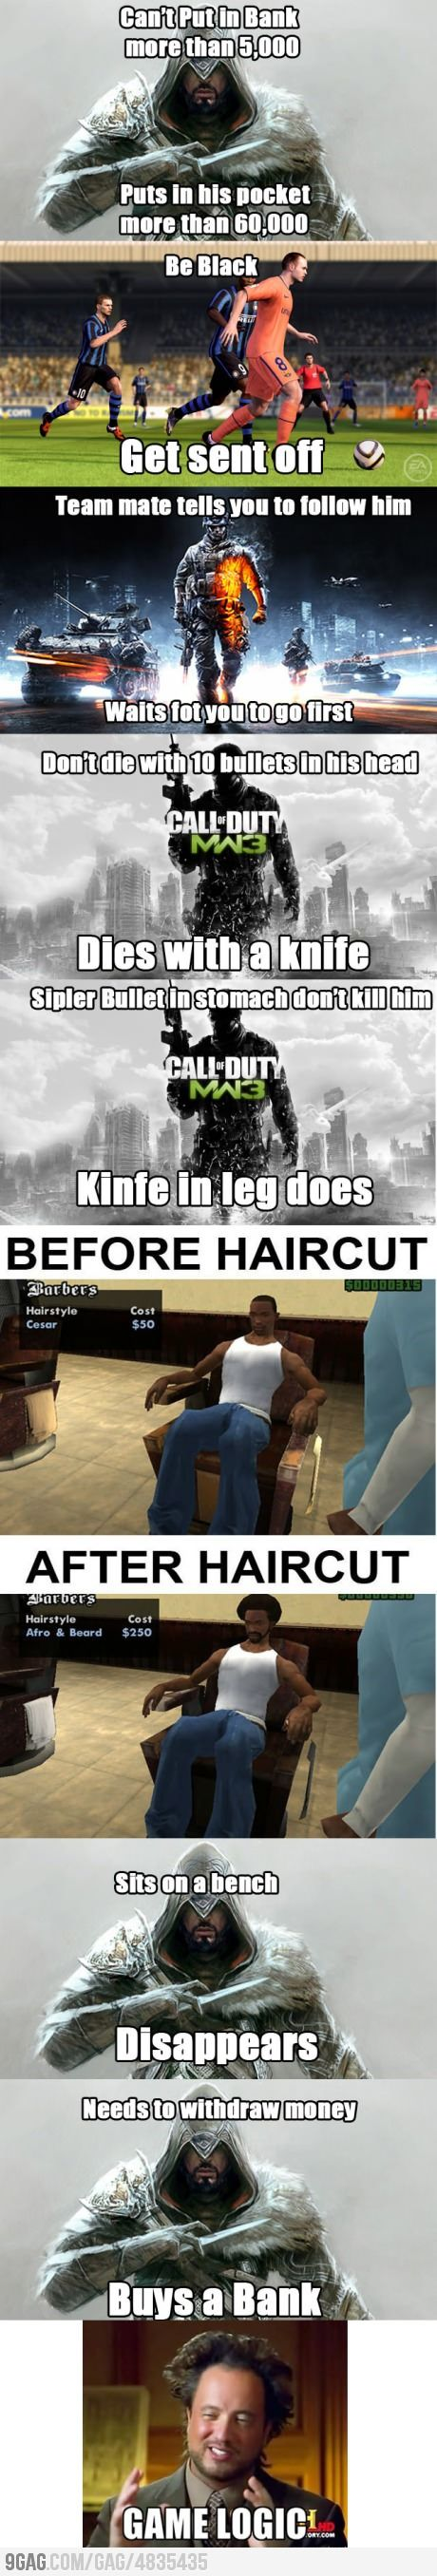 Game Logic... My bf will tell you he hates MW3 logic b/c he shoots someone 20 times and they live and kill him ... I hear him yell about this all the time. LOL